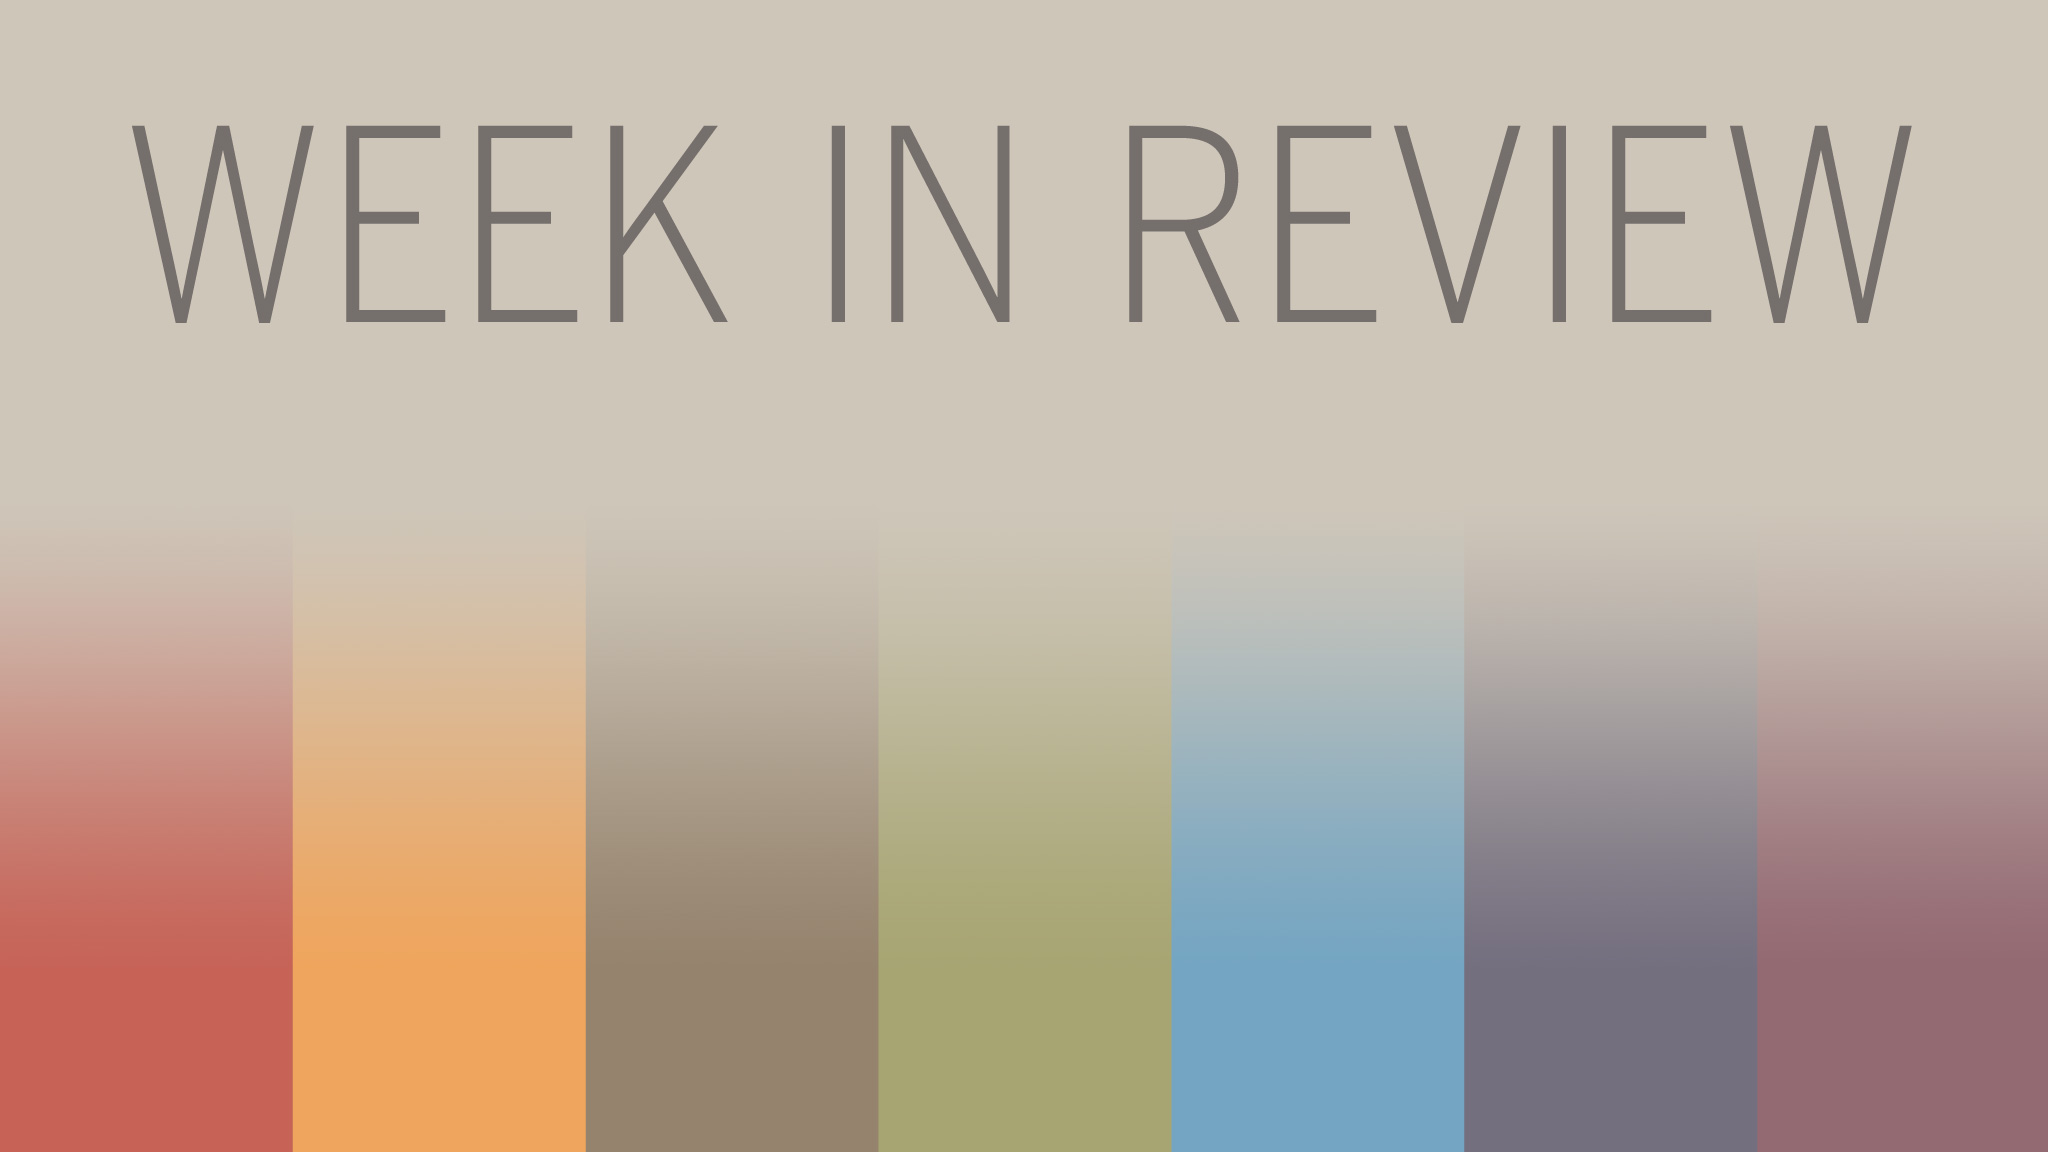 Week in Review, March 7 | Financial Times